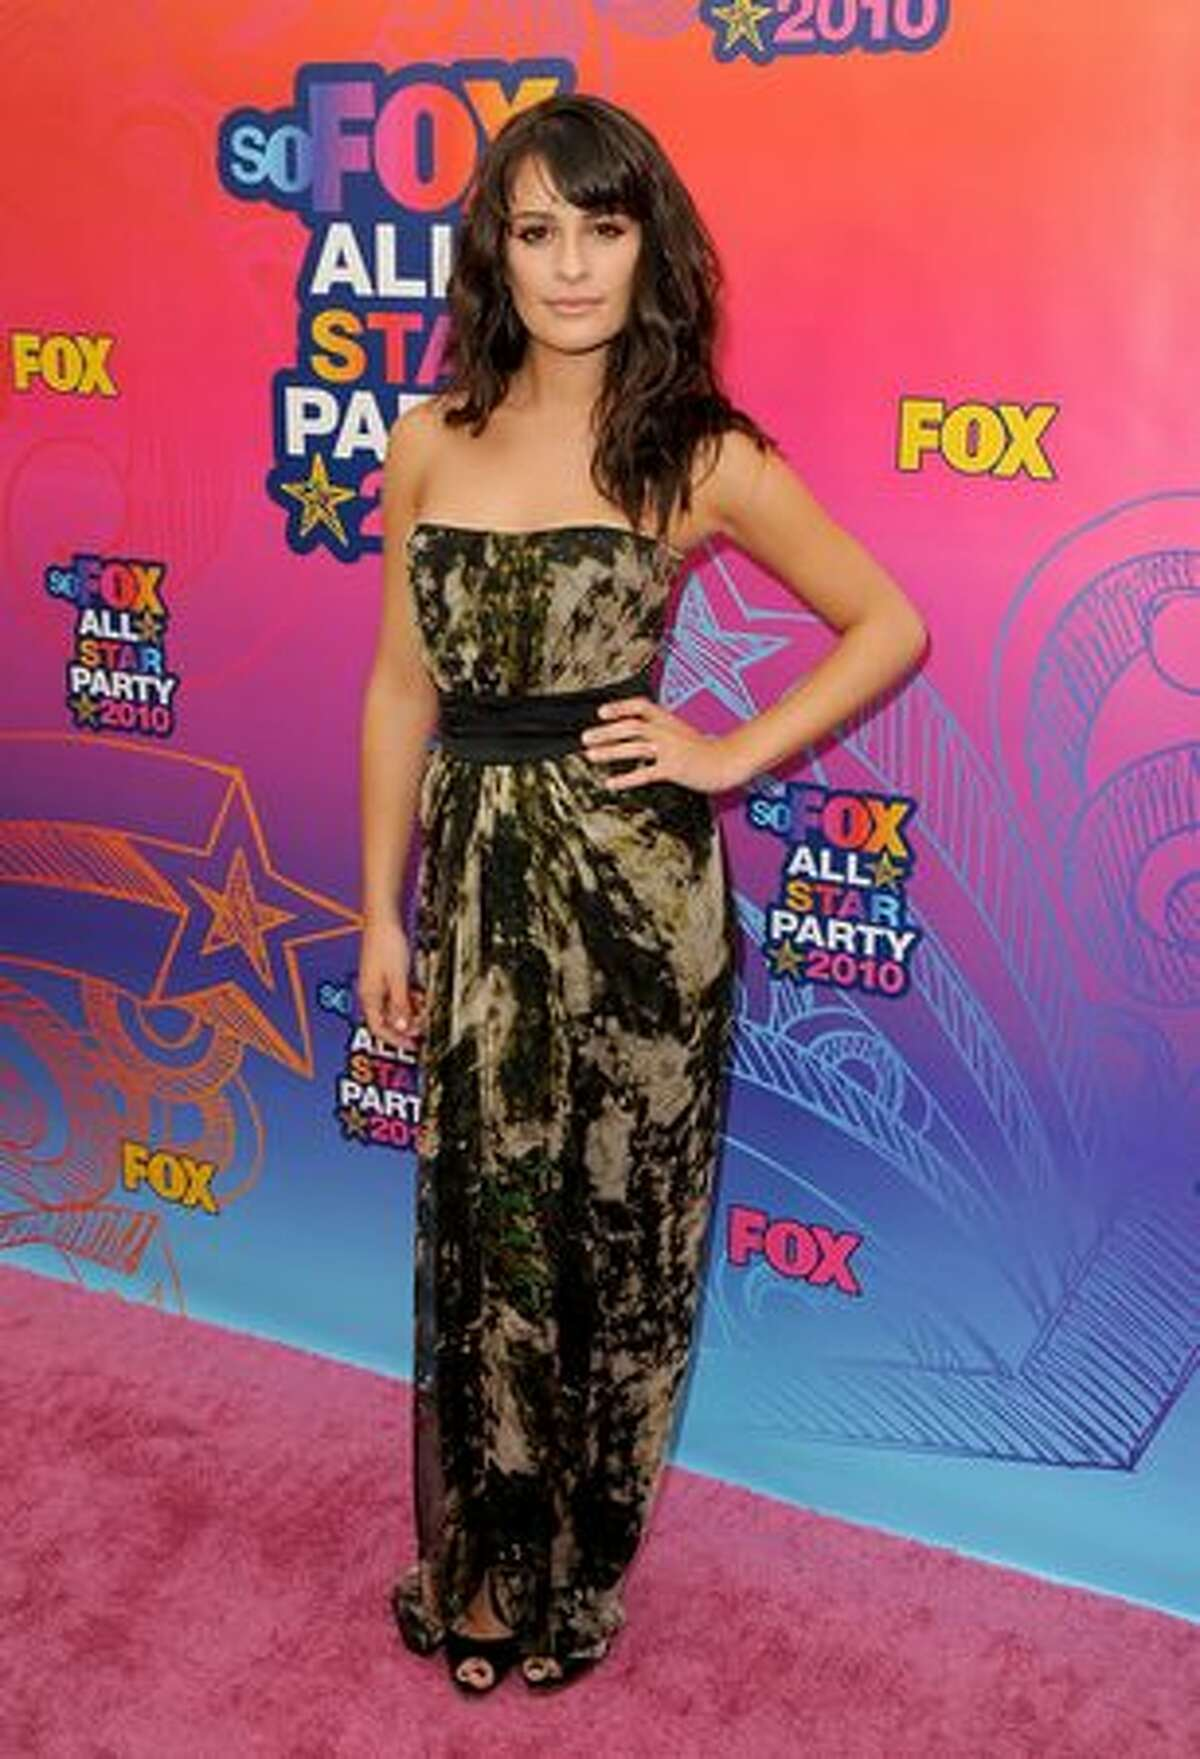 Actress Lea Michele arrives at the Fox 2010 summer Television Critics Association all-star party held at Pacific Park on the Santa Monica Pier in Santa Monica, Calif., on Monday, Aug. 2, 2010.